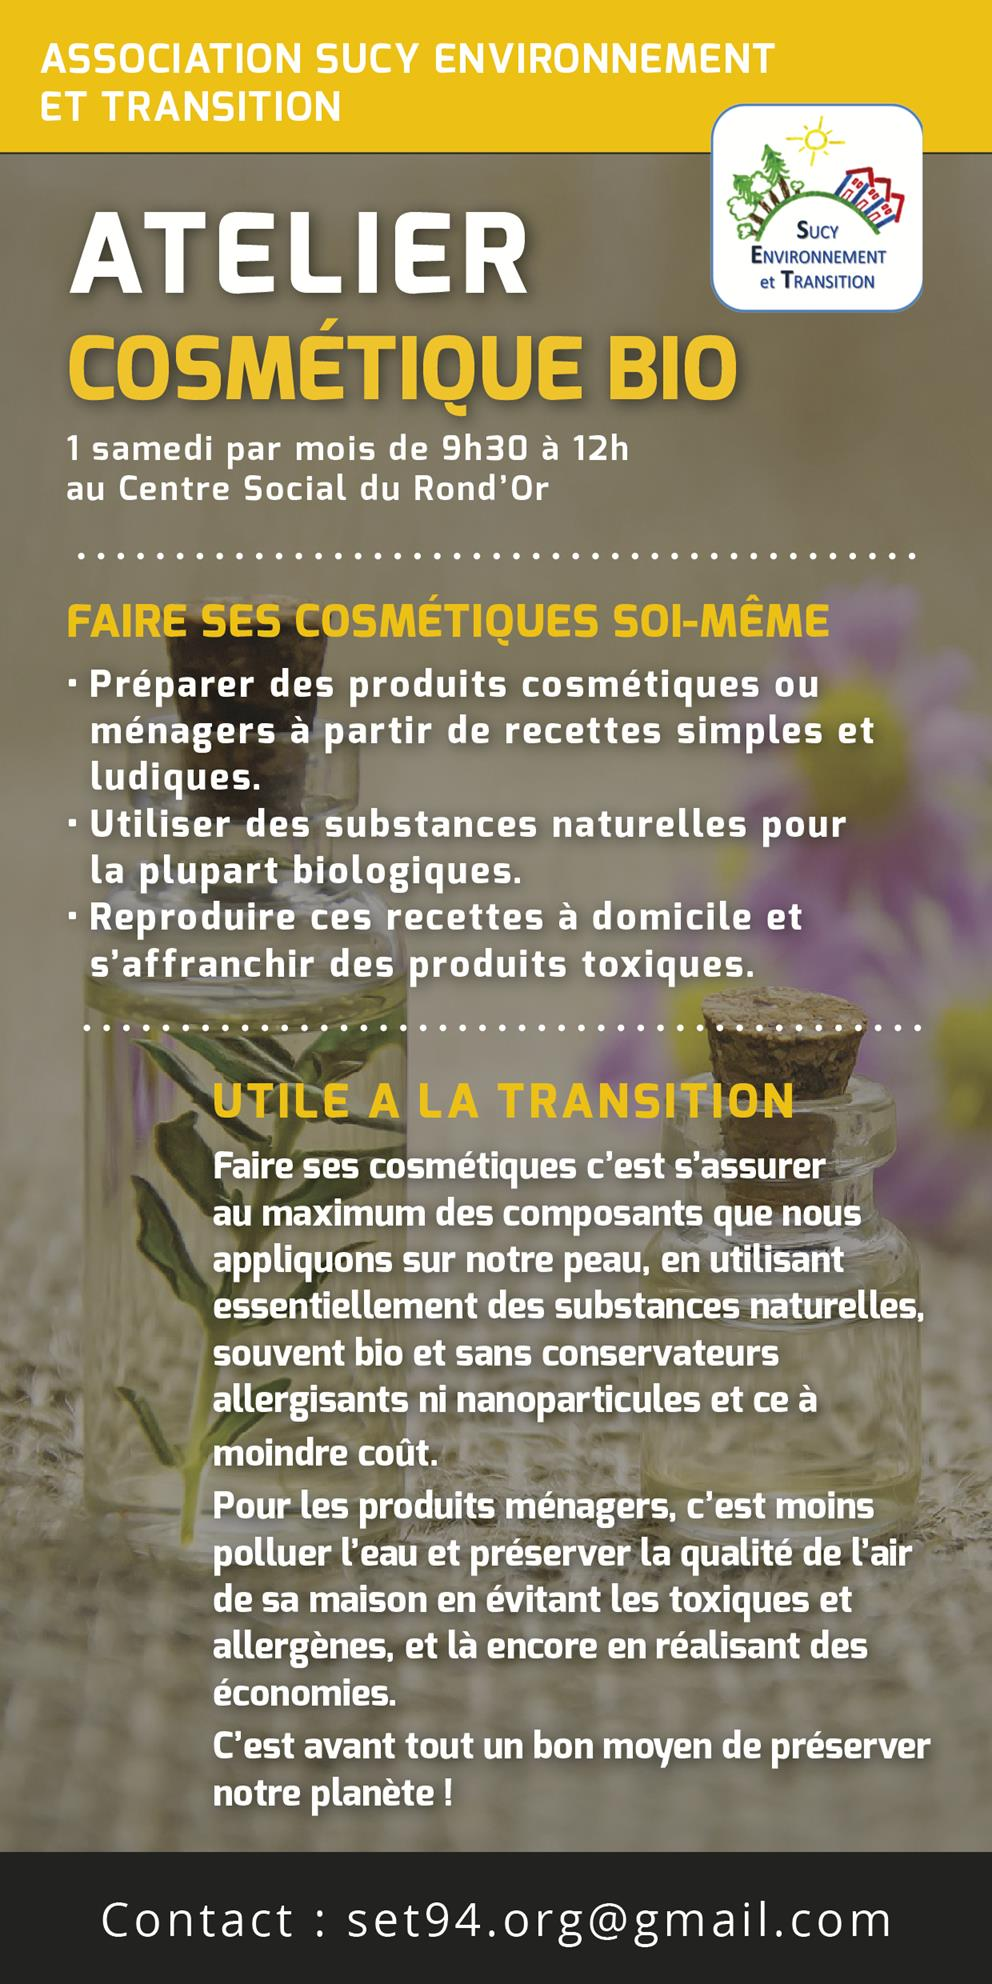 Atelier_Cosmetique (Copy)